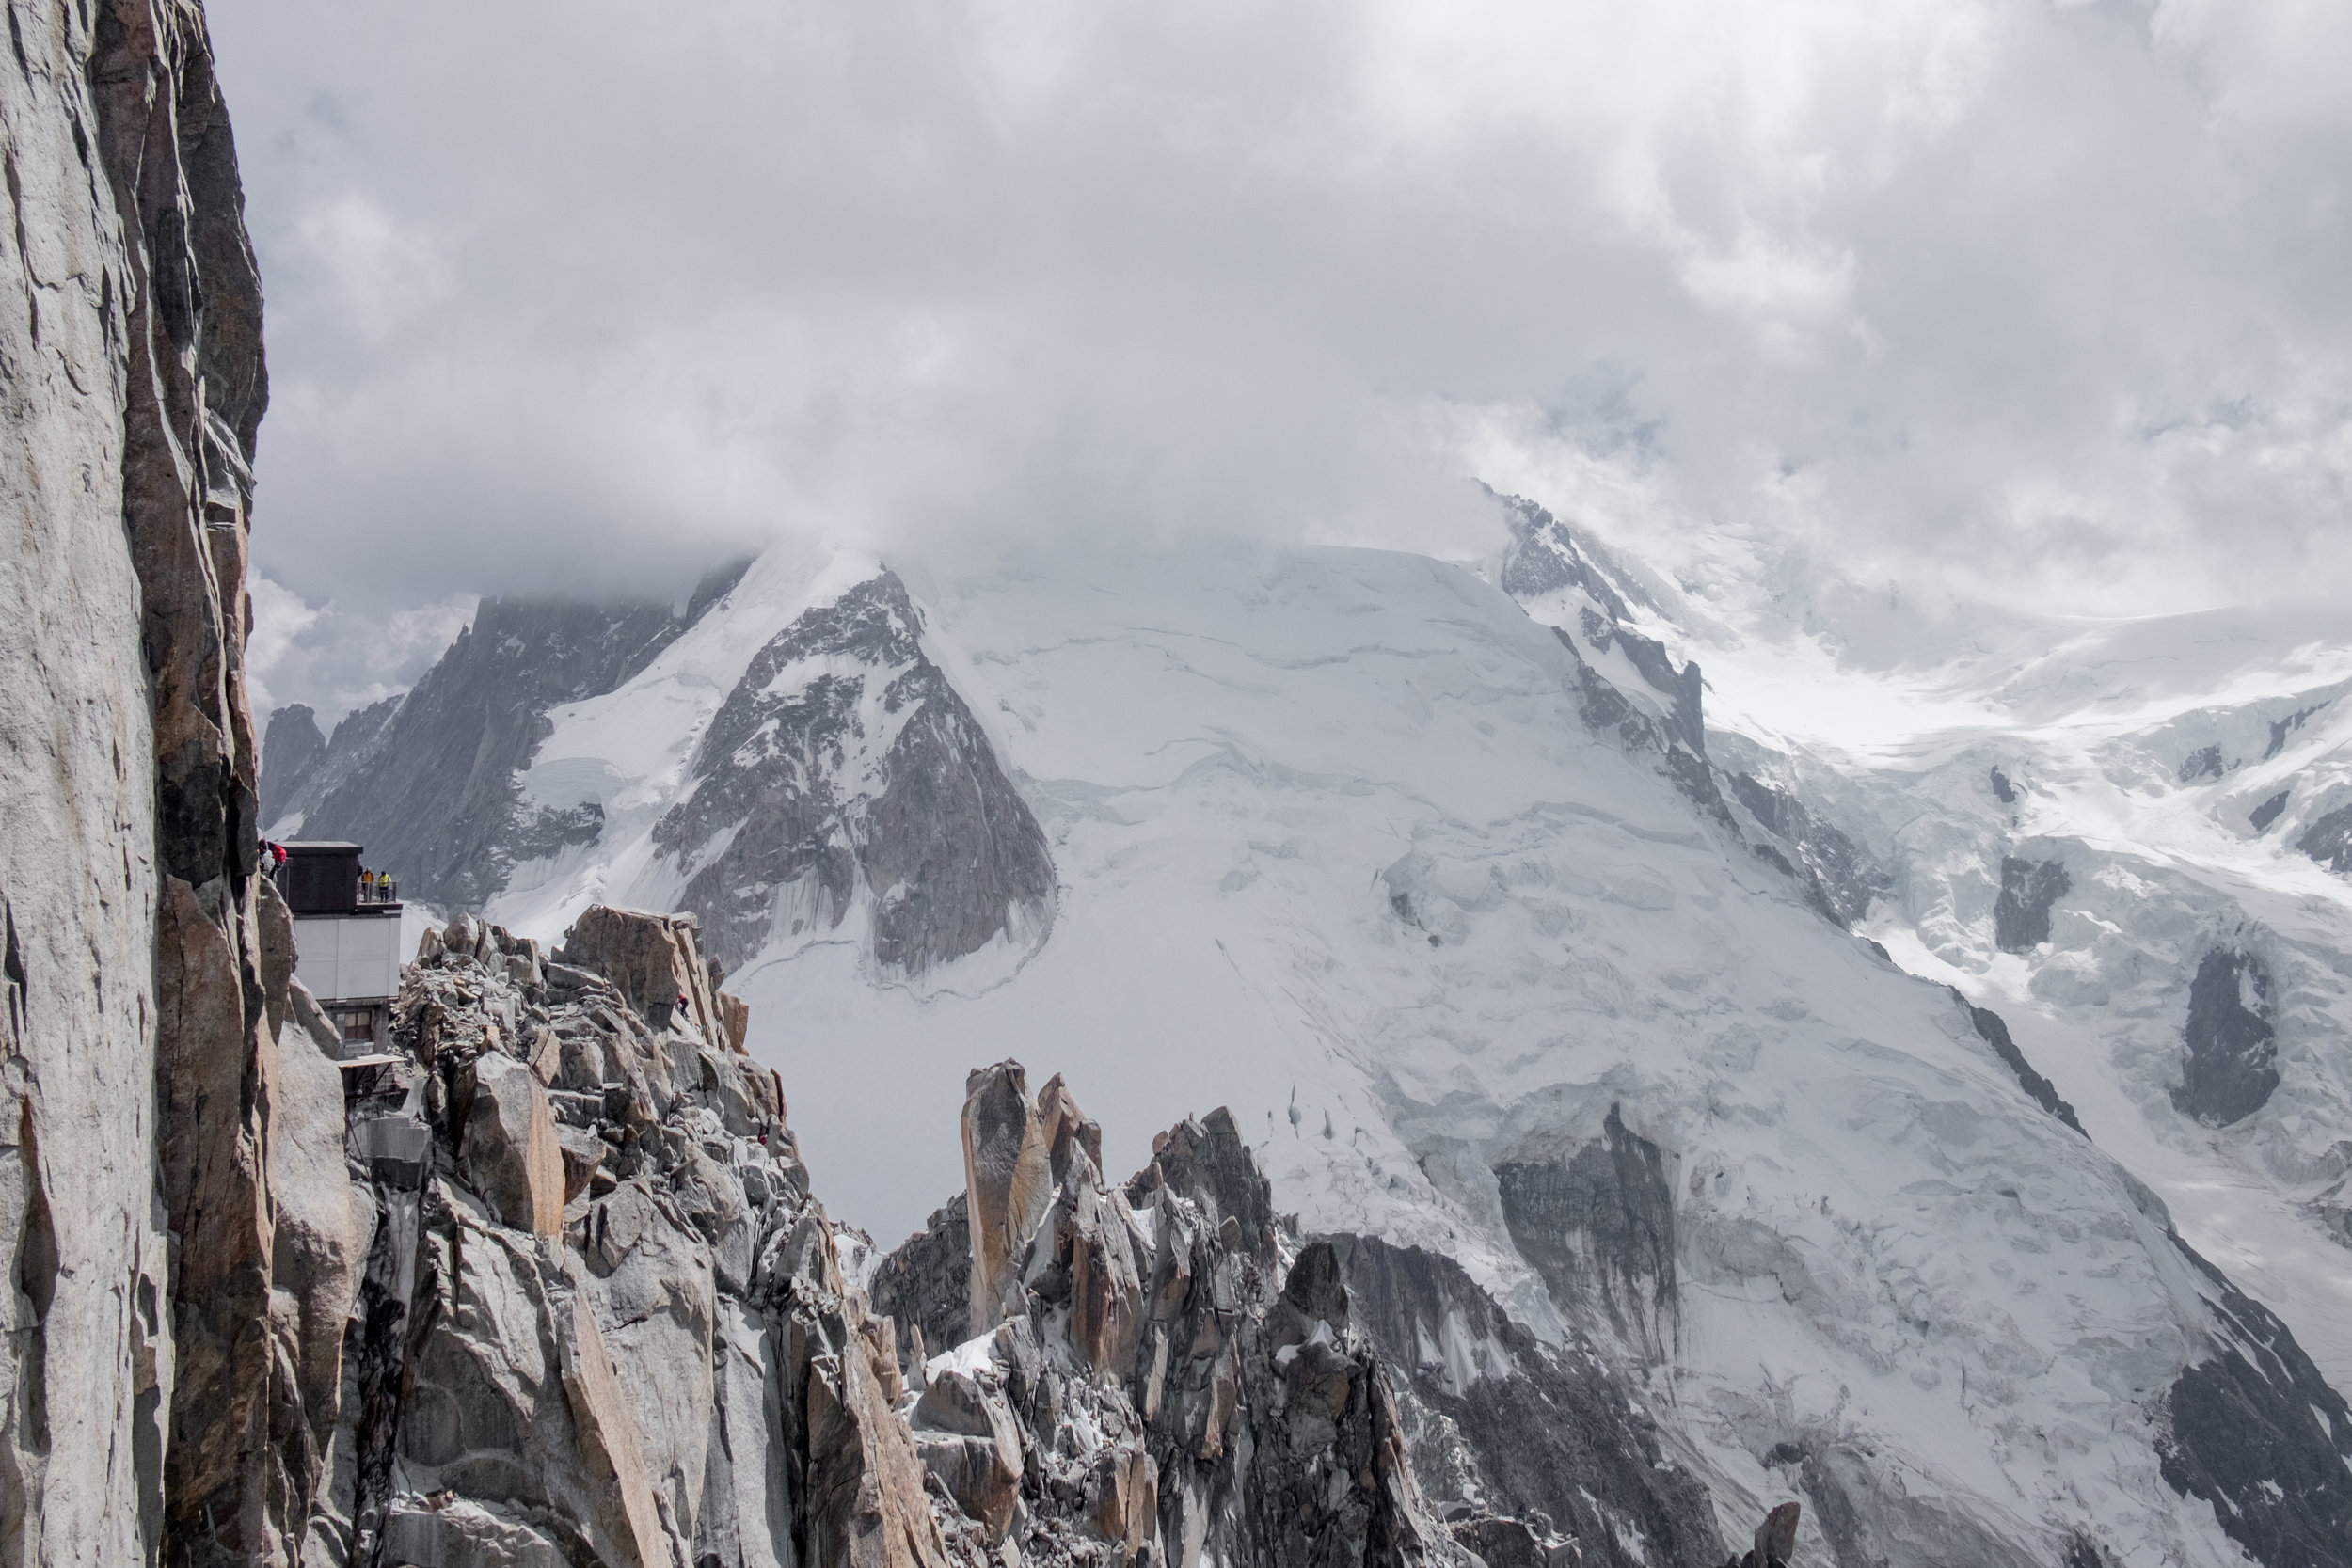 Looking back towards Cosmiques and Arete Laurence behind.